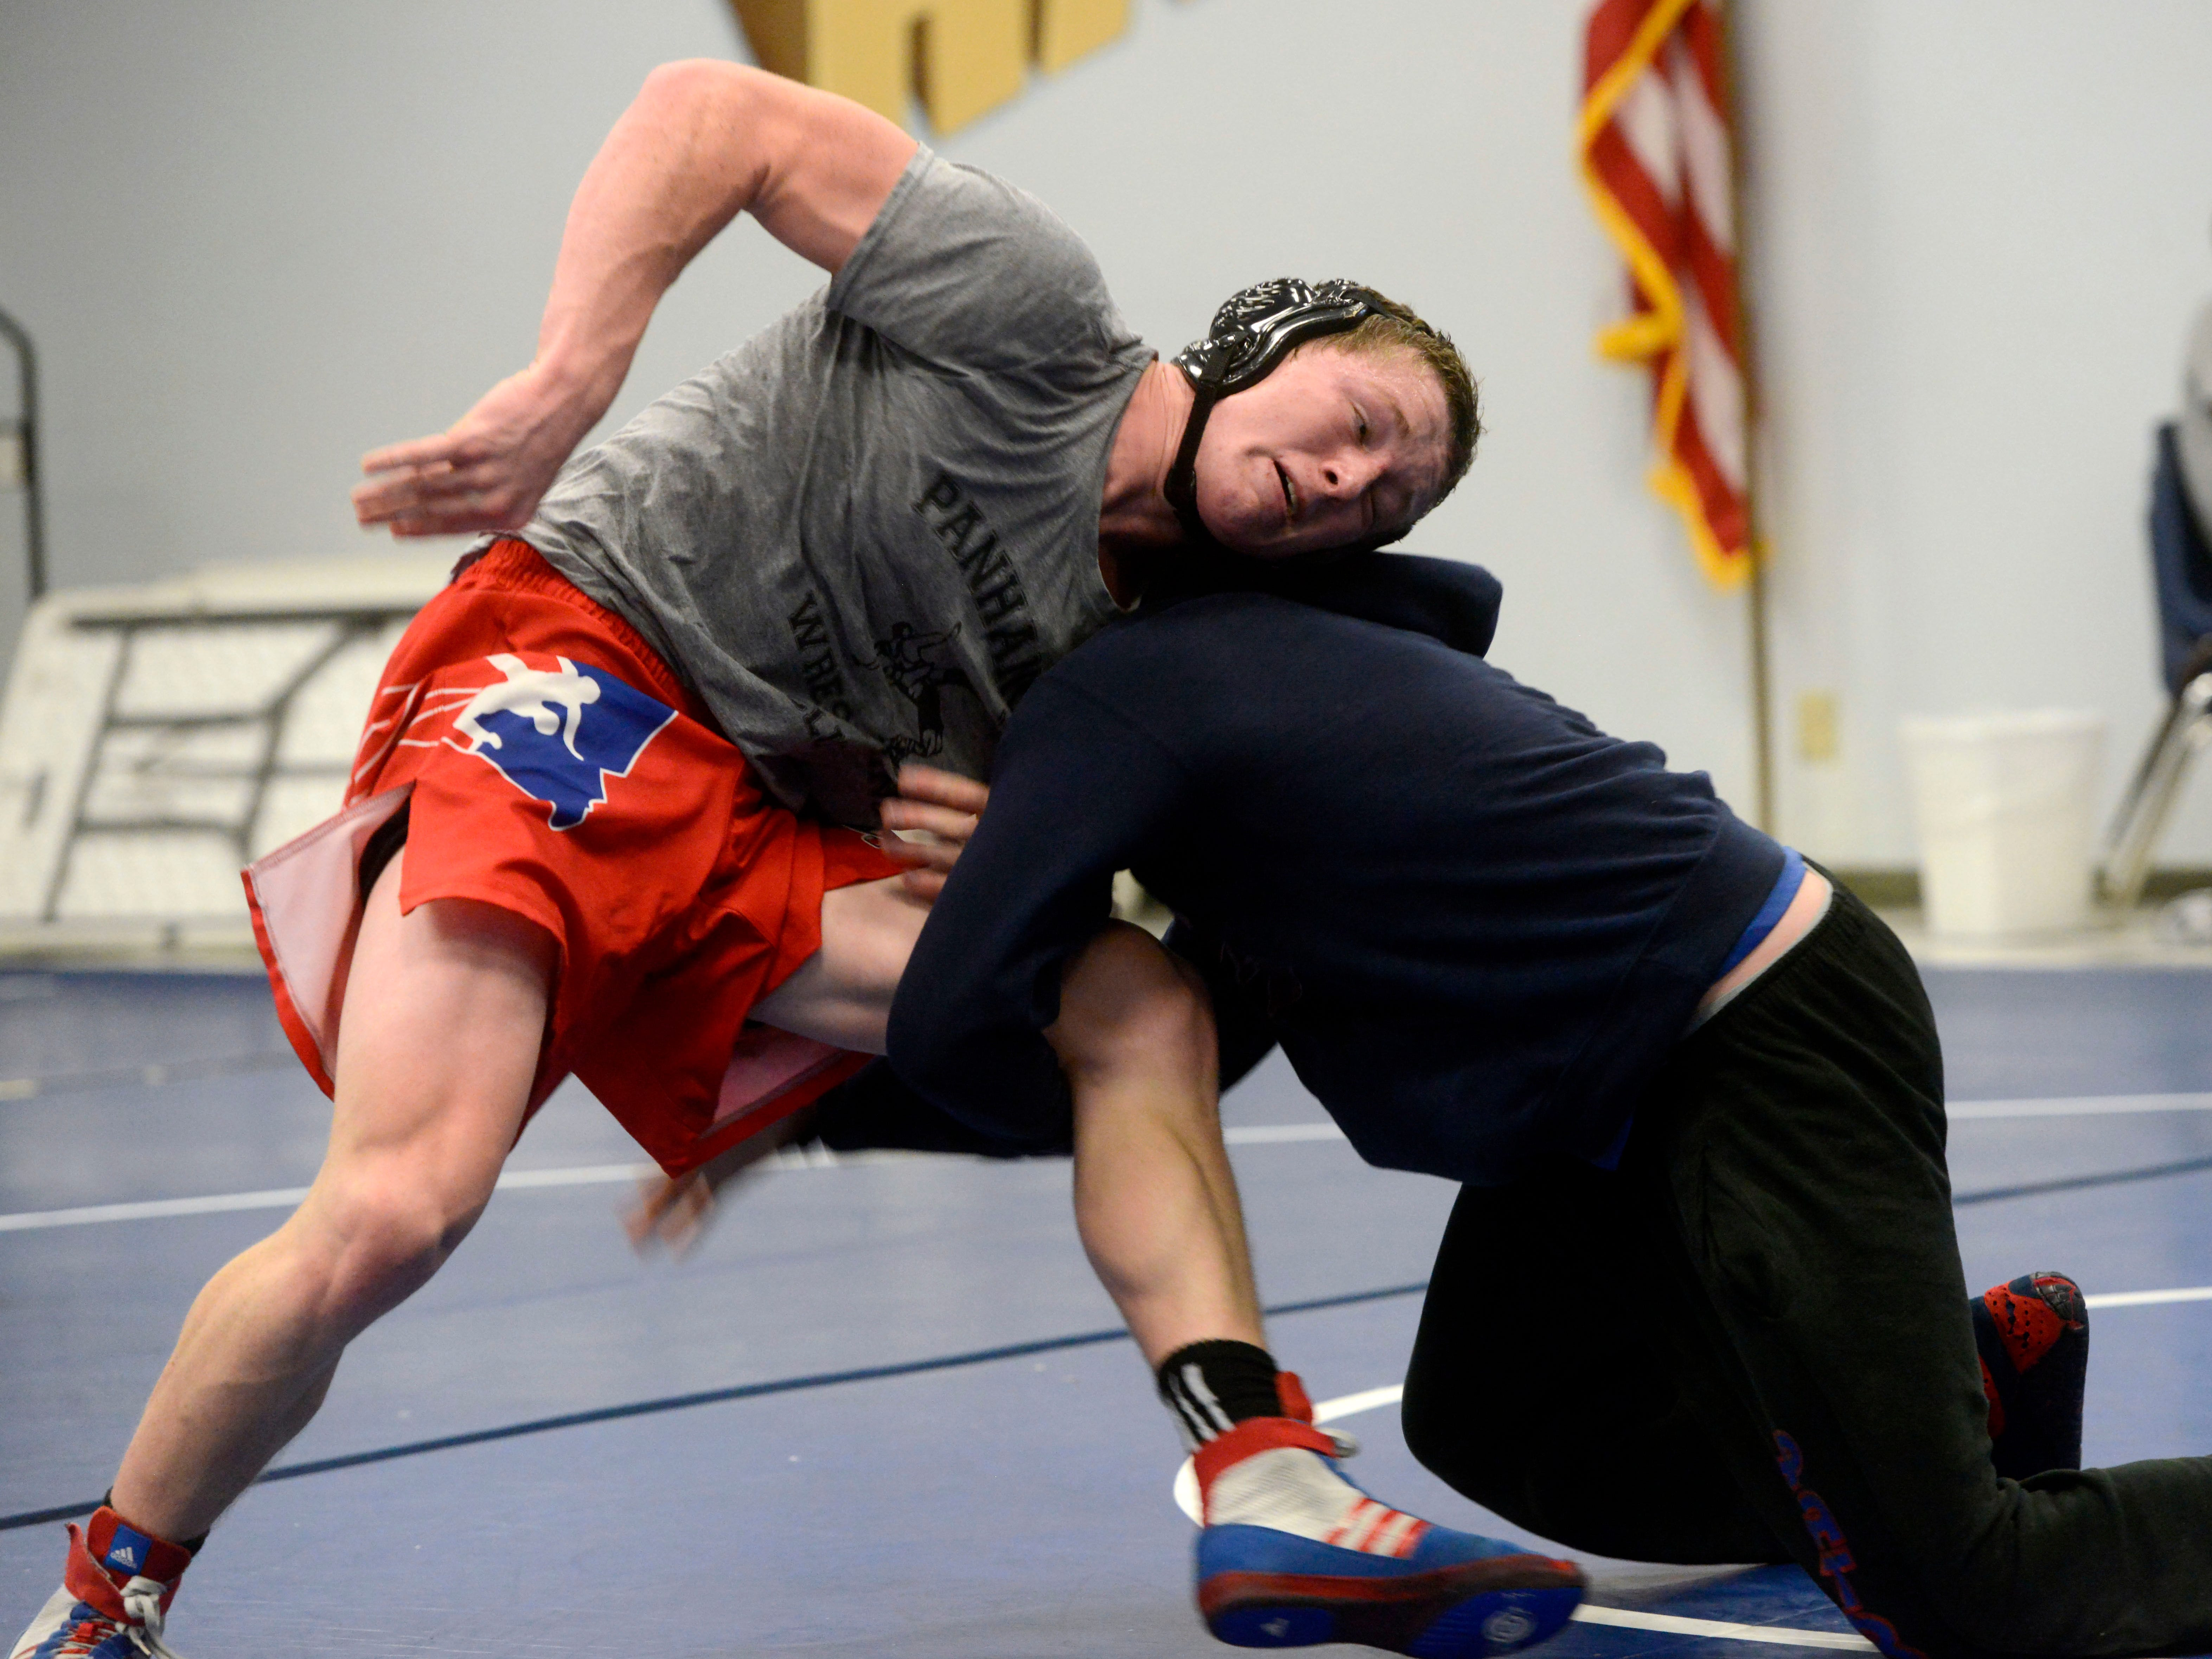 wrestling and high school practices Wrestling junior high schools may also hold competitions with three or fewer schools provided there is no loss of school practice shall not begin.